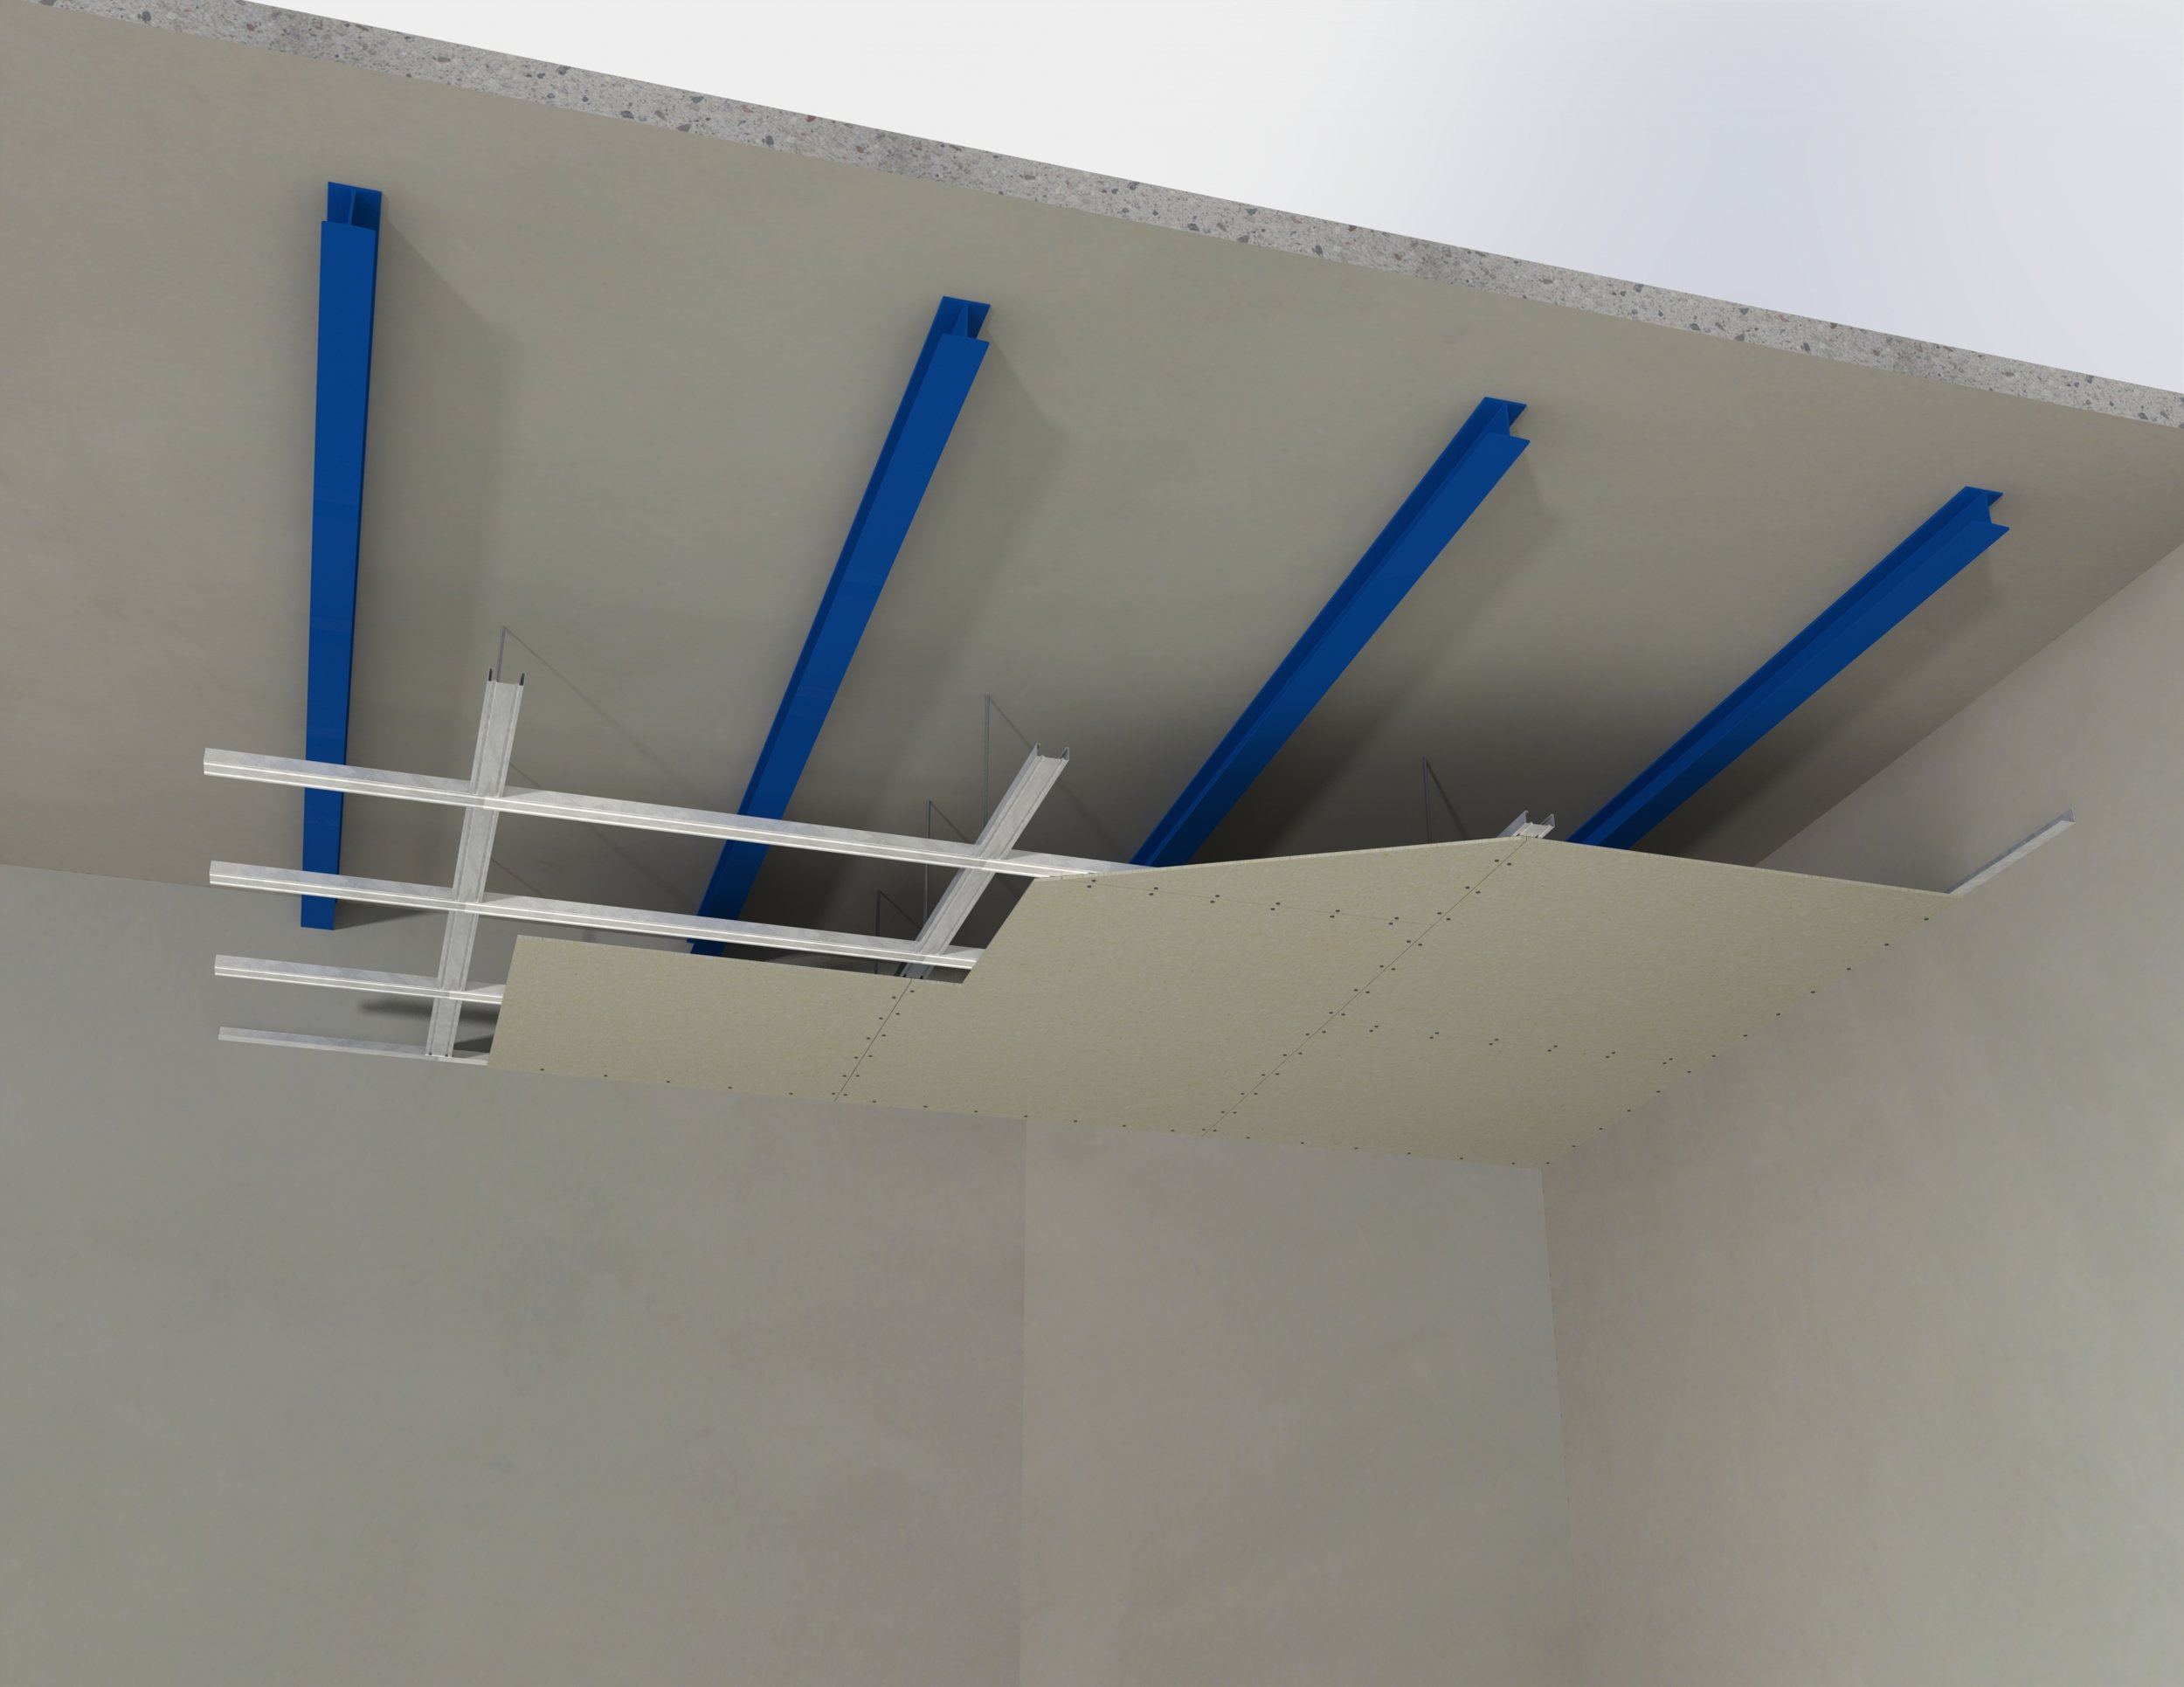 Suspended ceiling membranes protecting concrete slab supported by steel beams